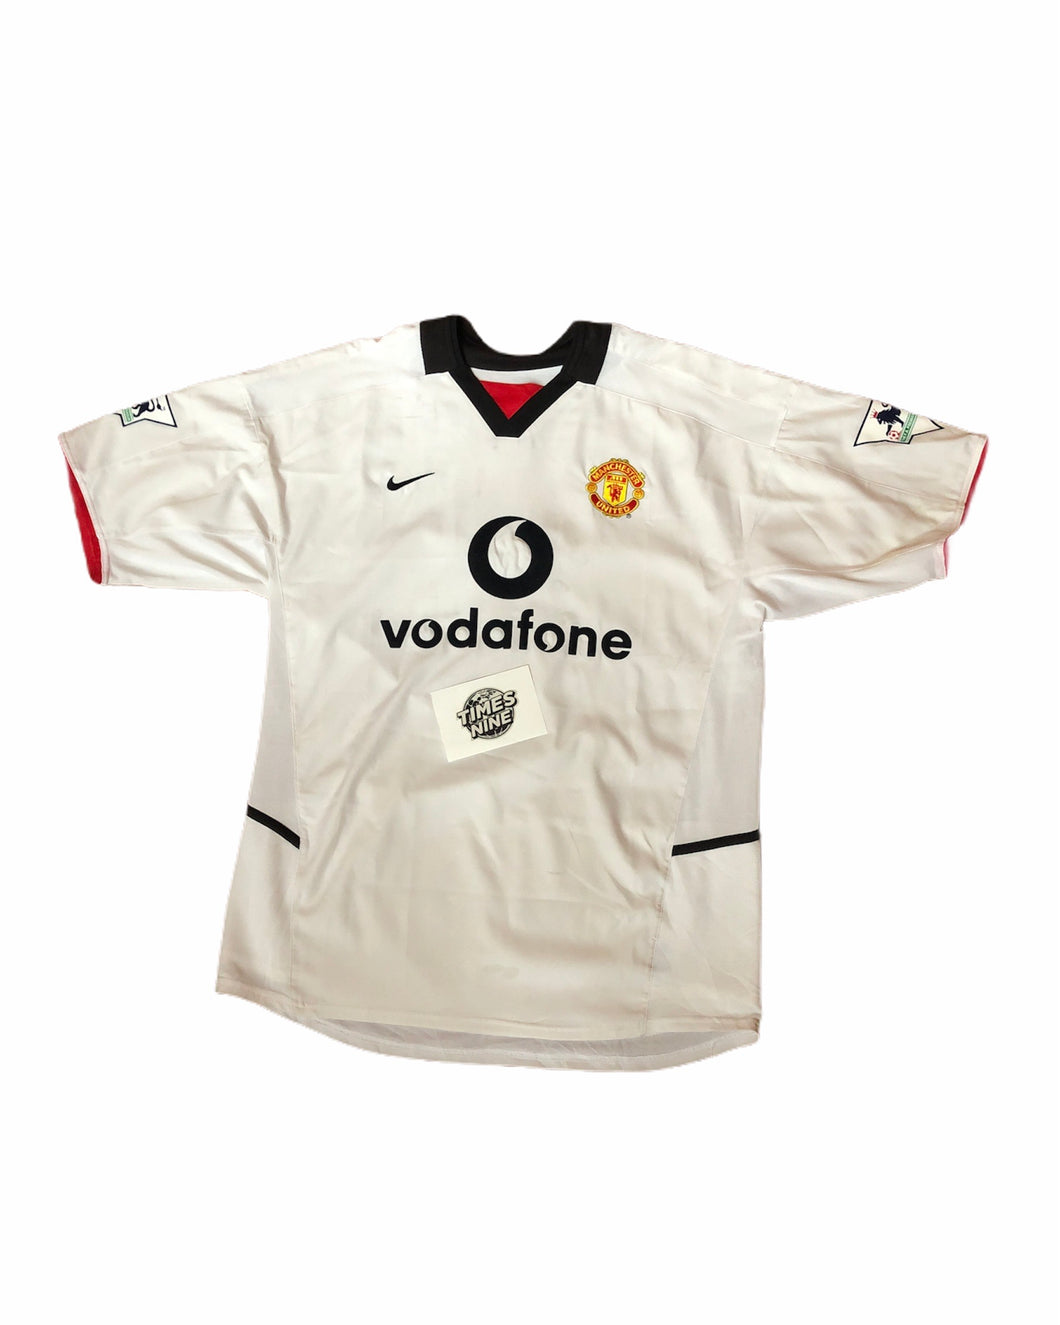 Nike Manchester United 2002/03 Away Shirt Size S/M